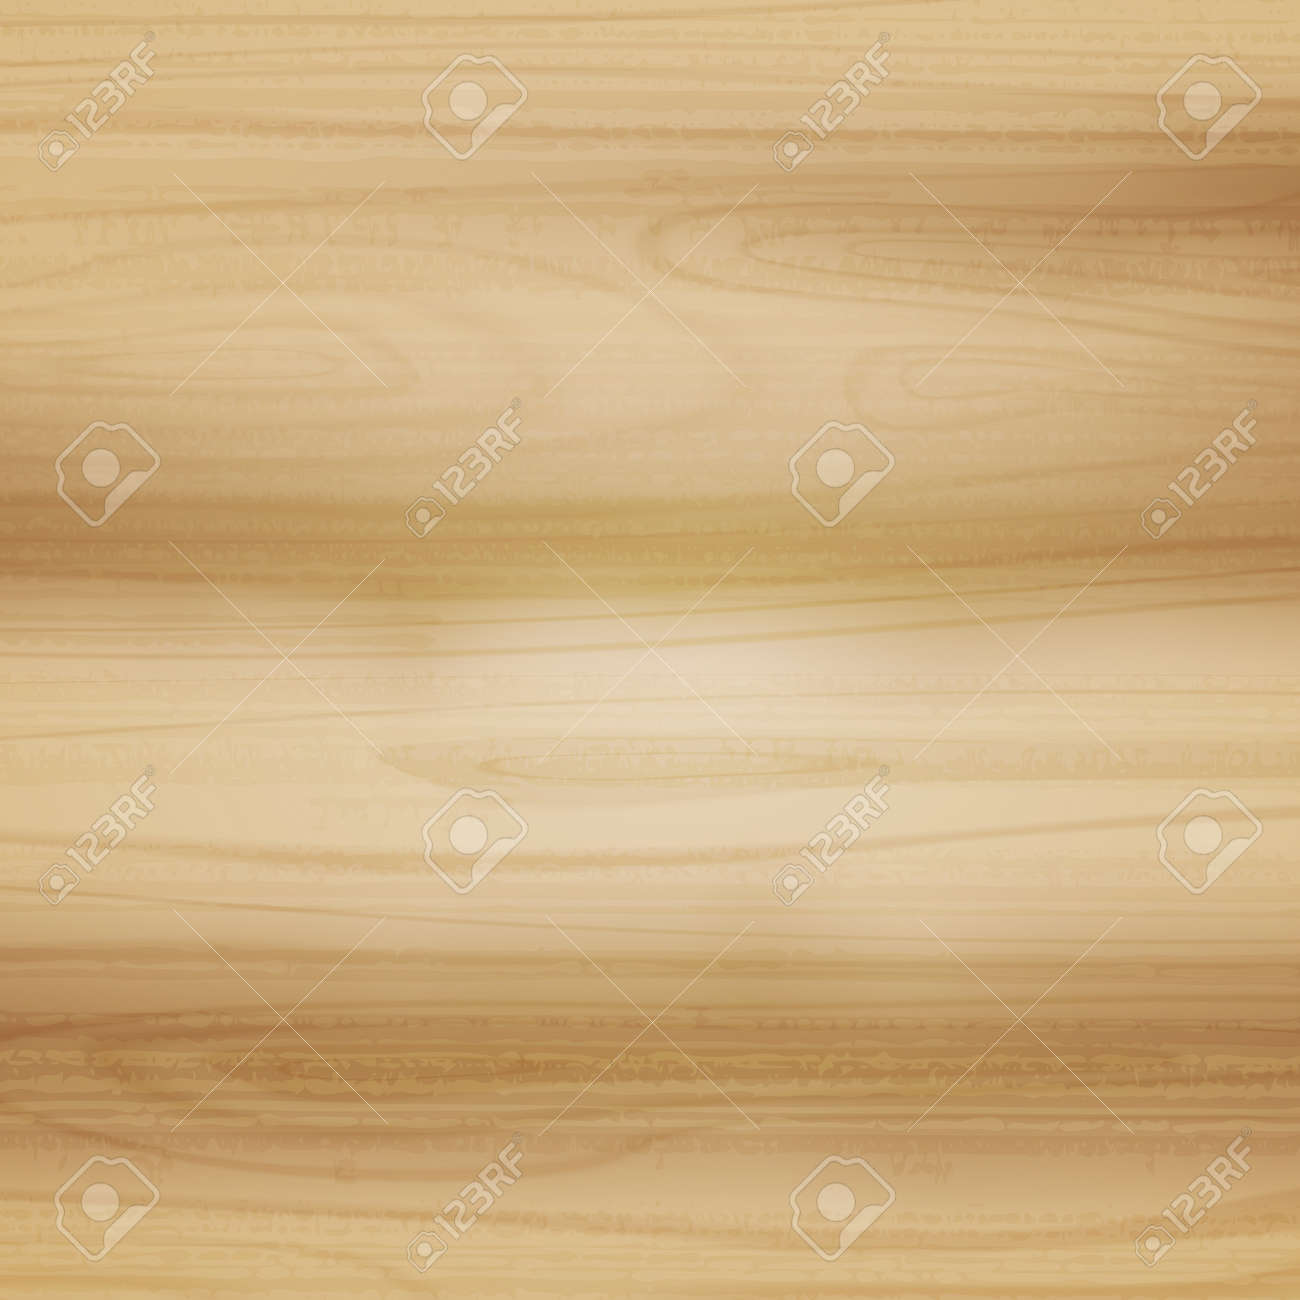 Realistic light wood pattern texture, background - Vector illustration - 167257573